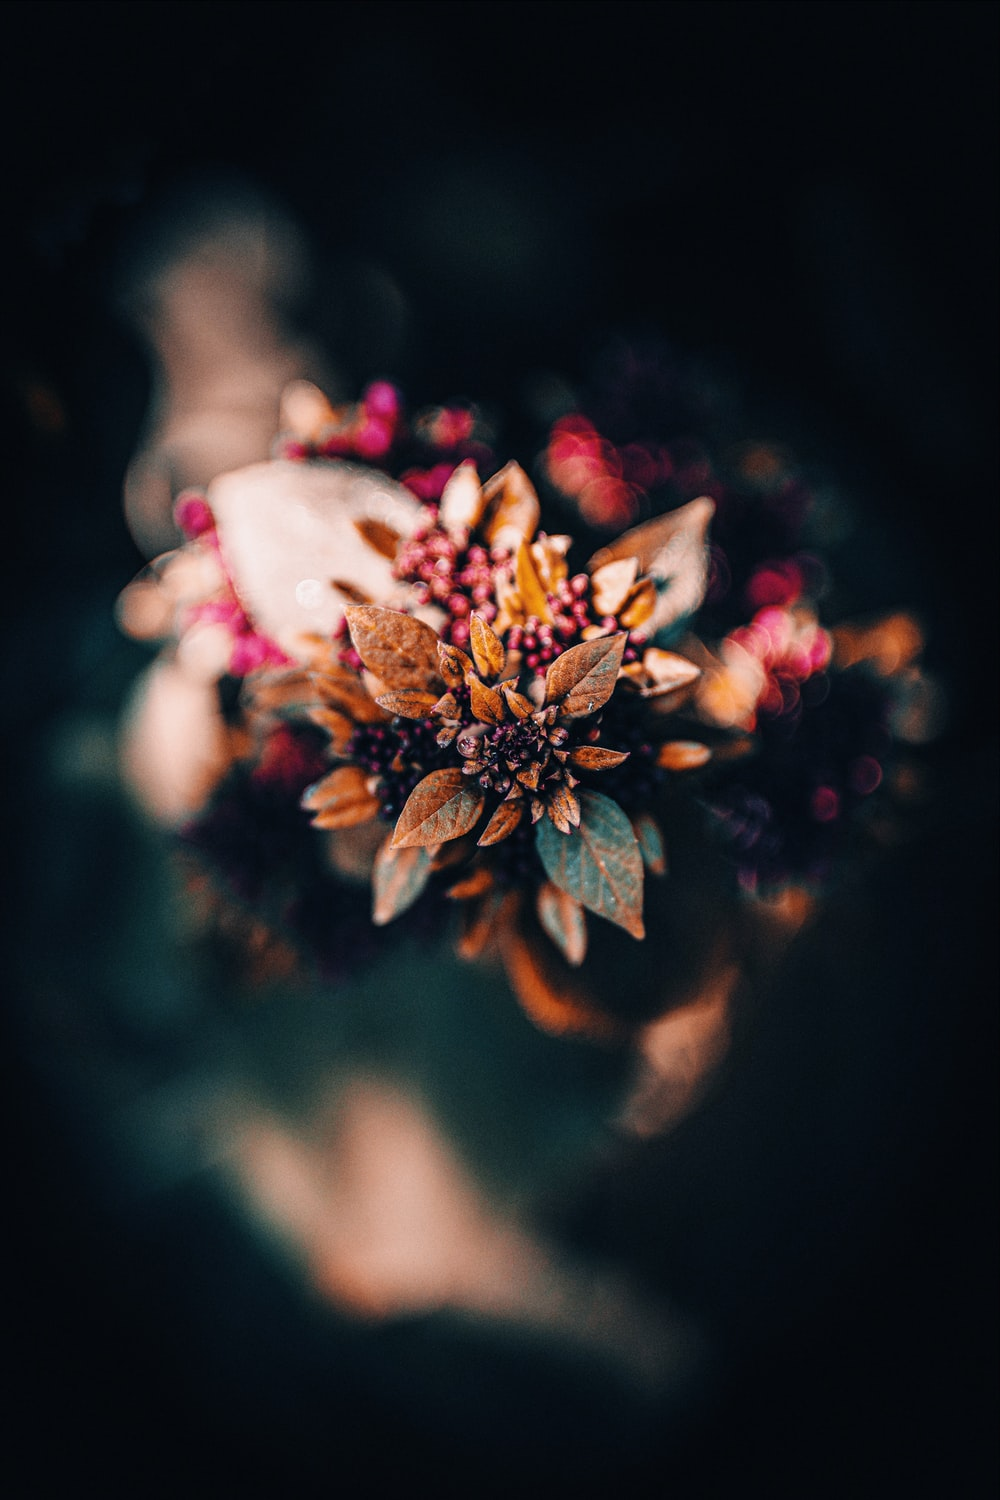 brown and red petaled flowers in selective-focus photo